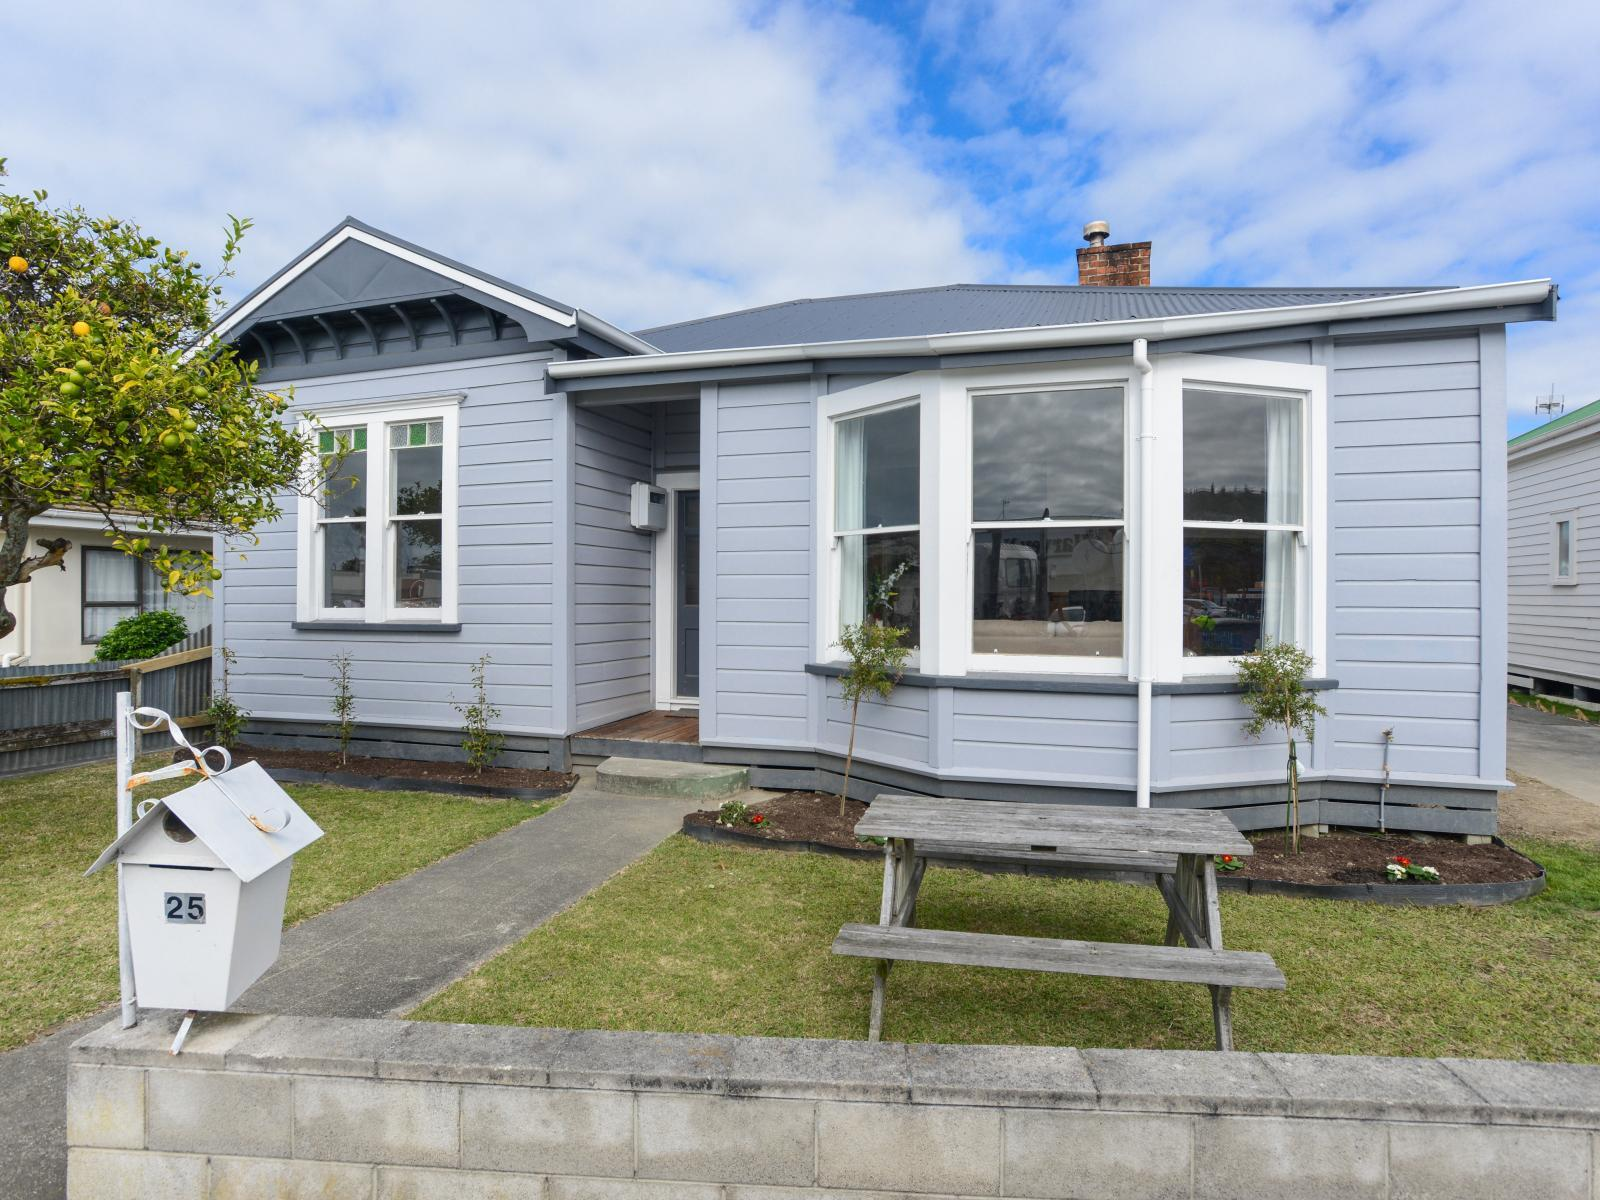 25 Wellesley Road, Napier South